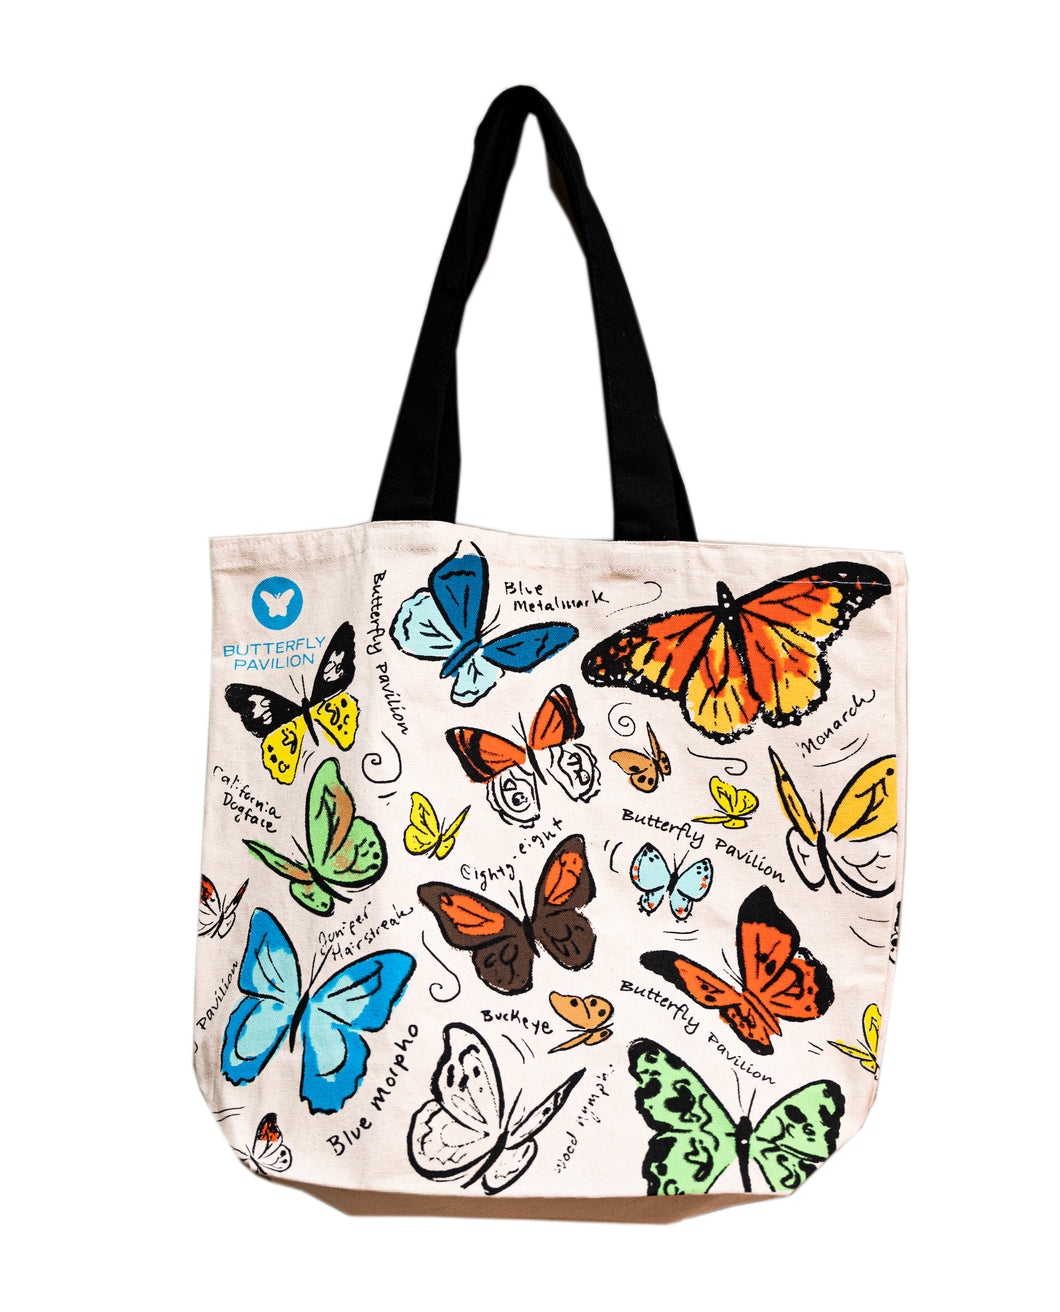 Butterfly Pavilion Canvas Shopping Tote